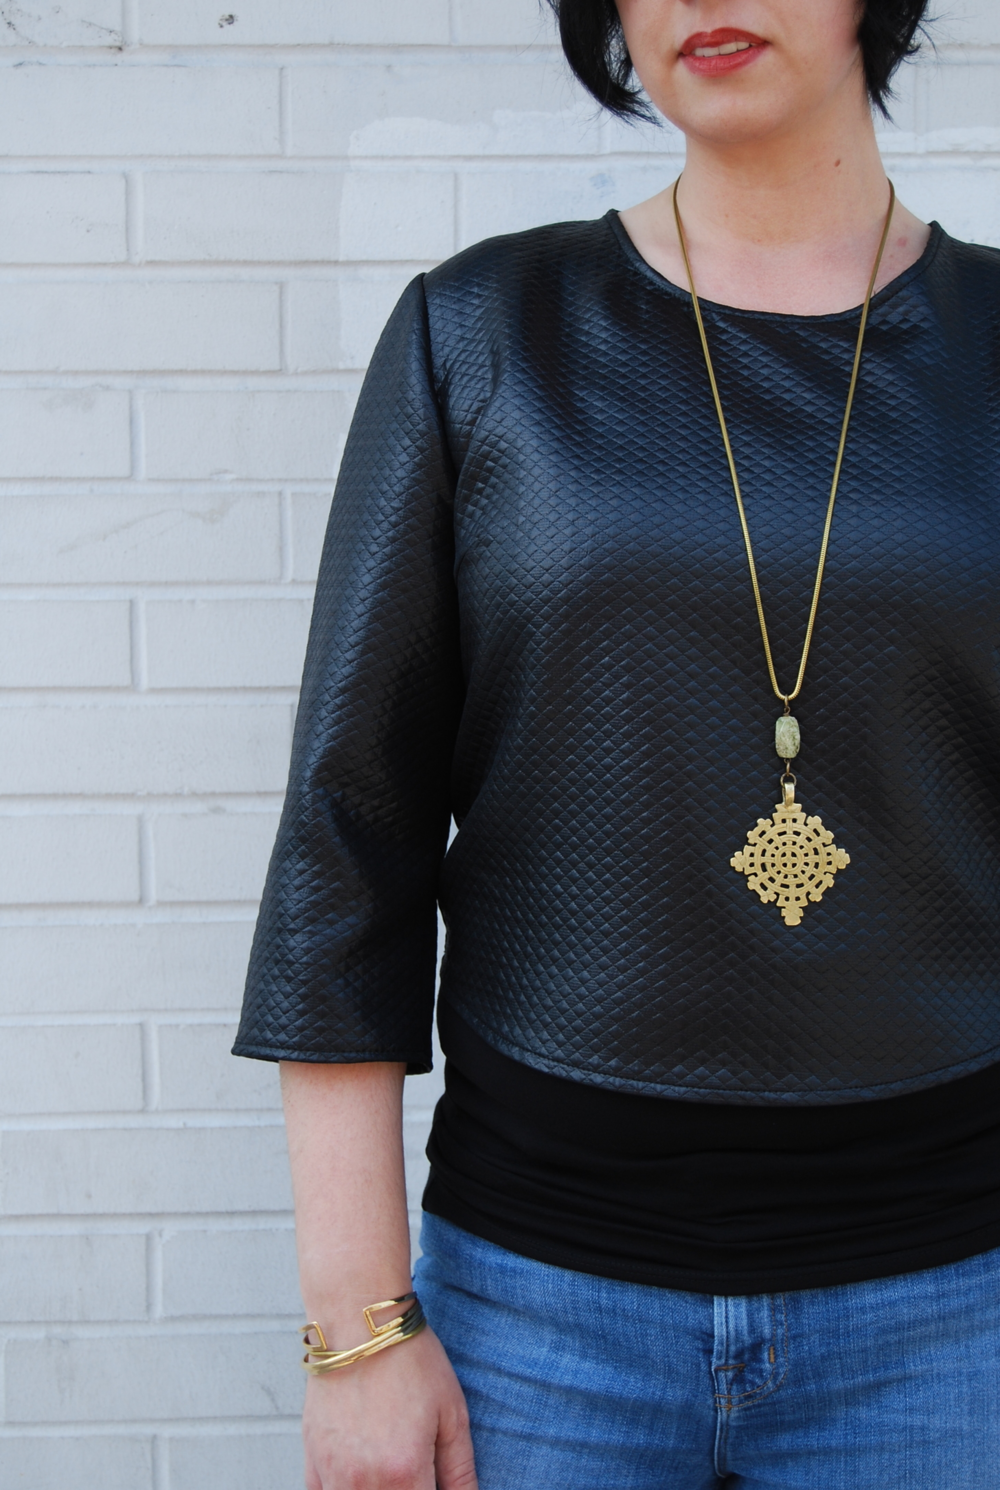 Jen wearing the Kisa quilted crop top with Litany Coptic cross necklace